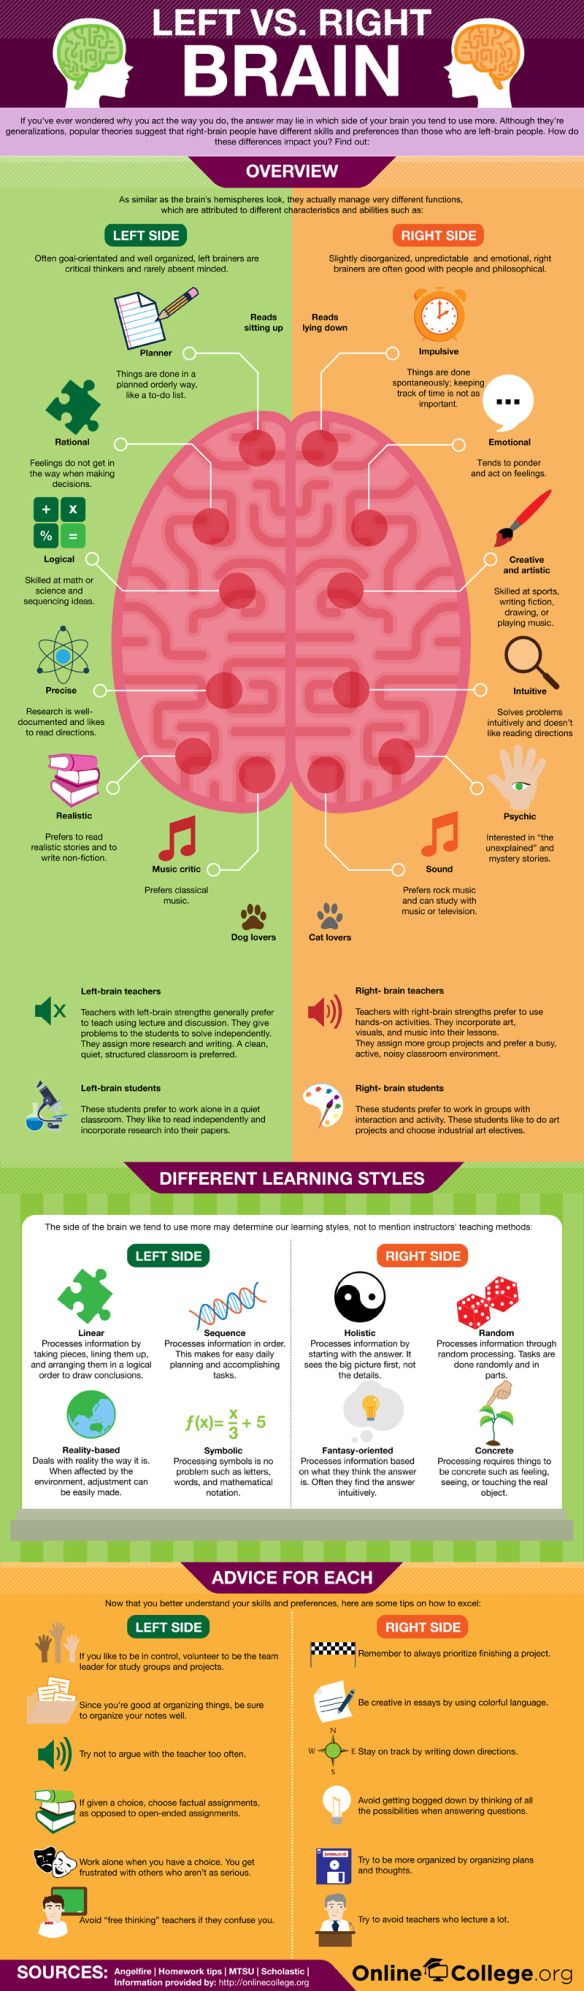 Learning- Left Brain or Right Brained | Honestgoodadvice's Blog